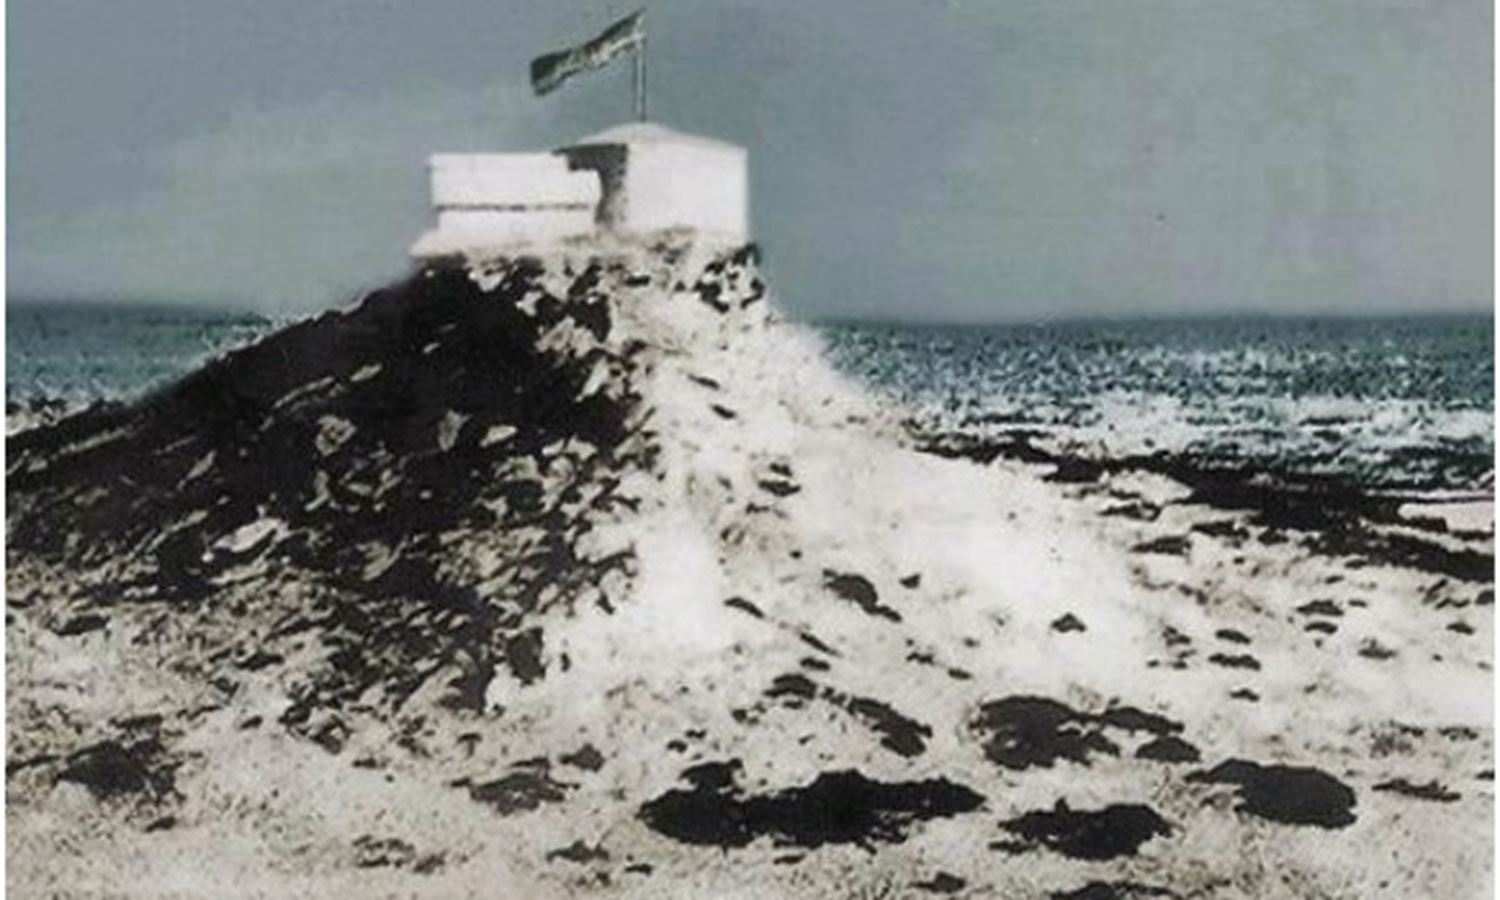 Shrine of ancient Sufi saint, Abdullah Shah Ghazi, in 1947. It was built in the 13th century on a sandy hill beside the sea in the area which became to be known as New Clifton.